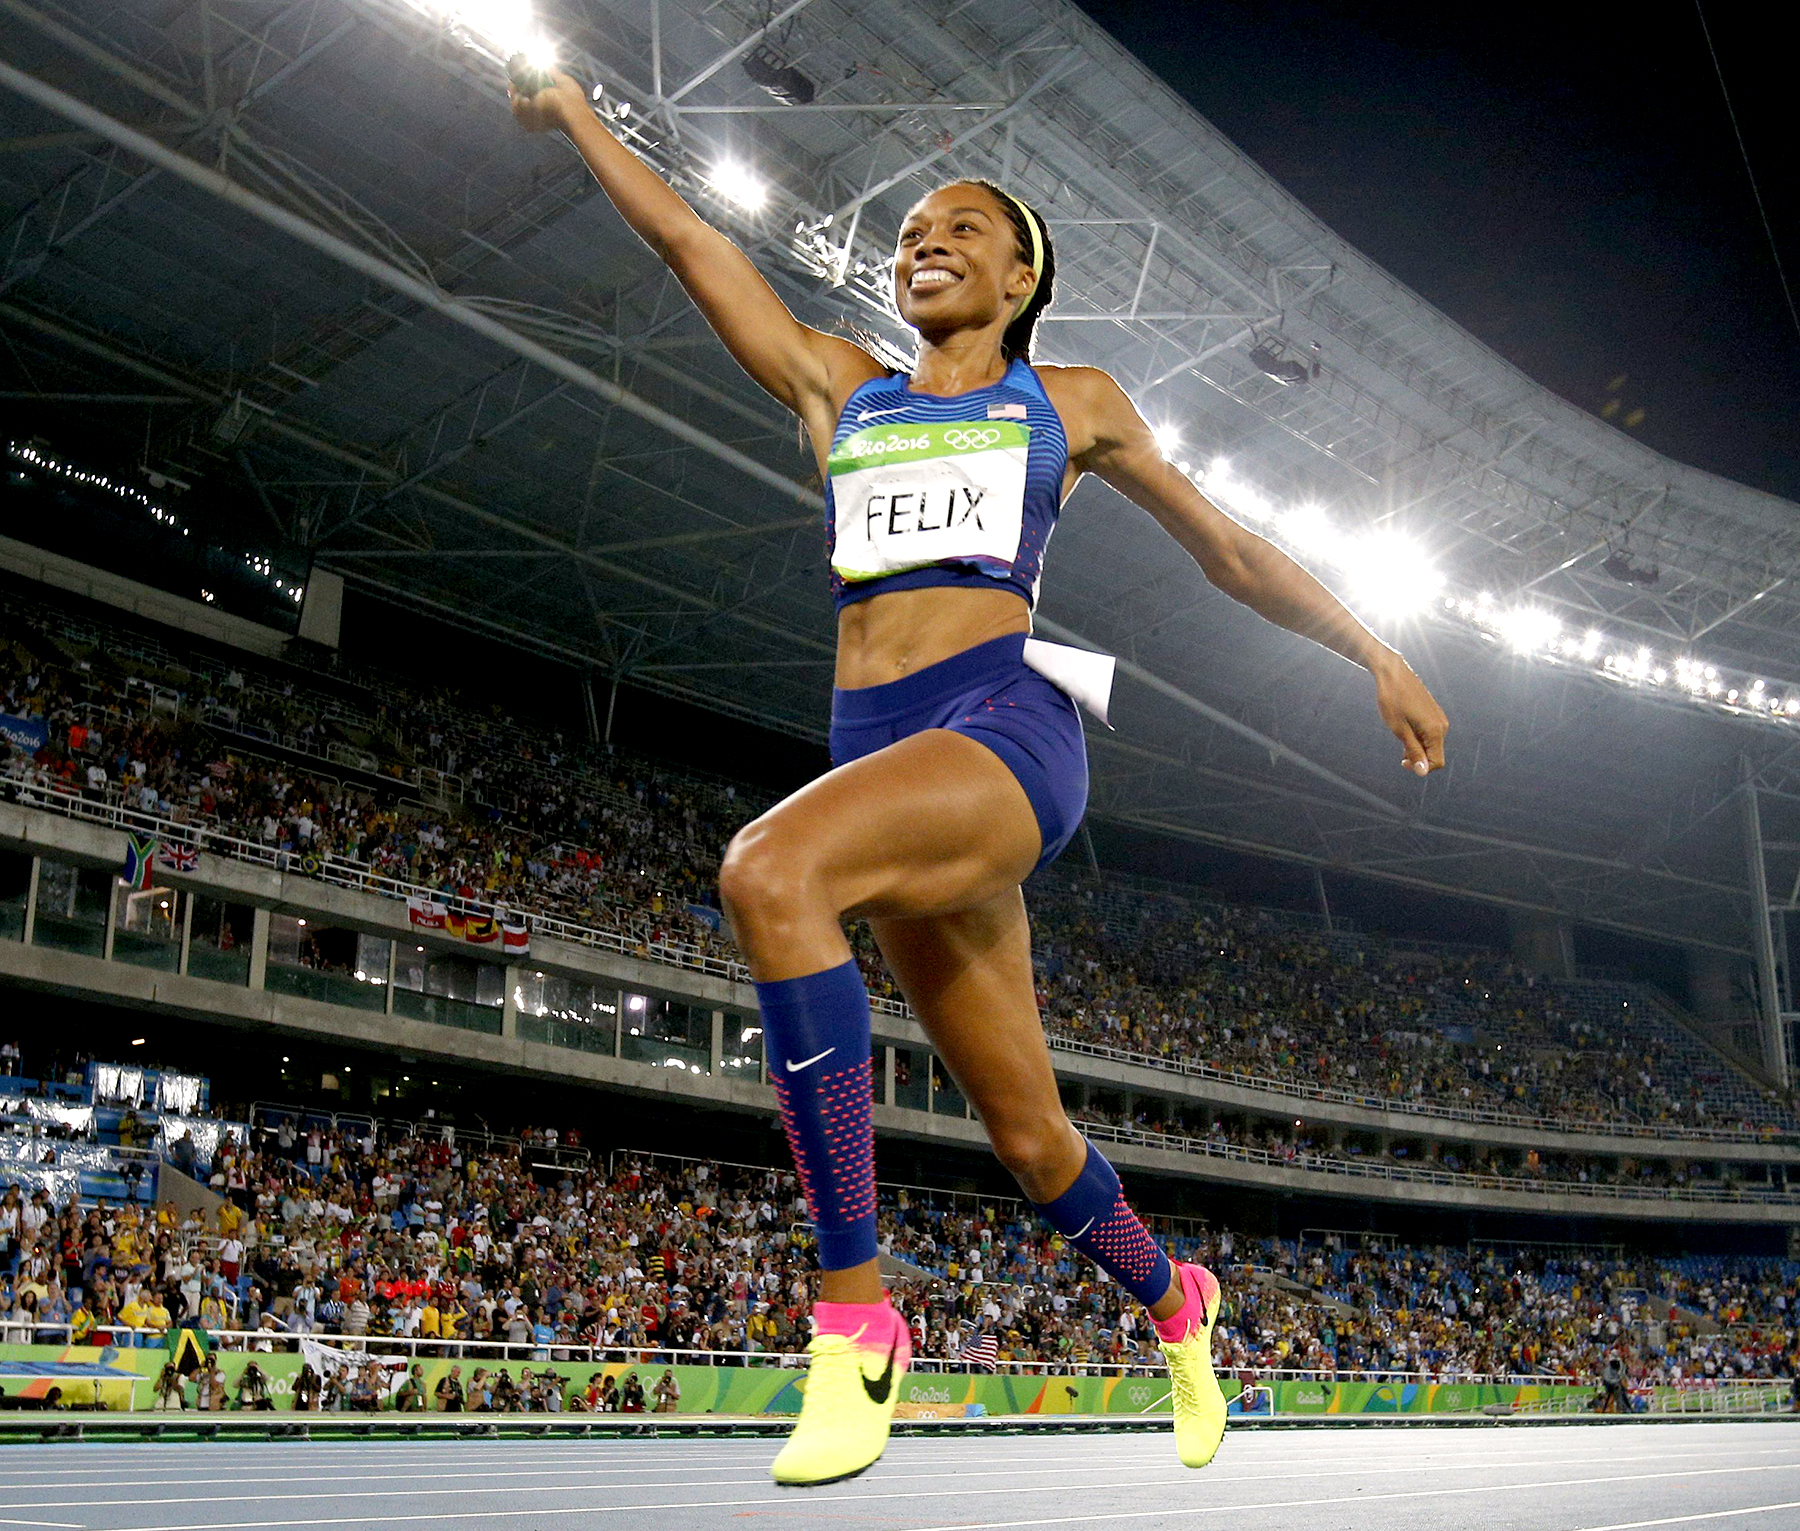 USA's Allyson Felix celebrates winning the Women's 4x400m Relay Final during the athletics event at the Rio 2016 Olympic Games at the Olympic Stadium in Rio de Janeiro on August 20, 2016.